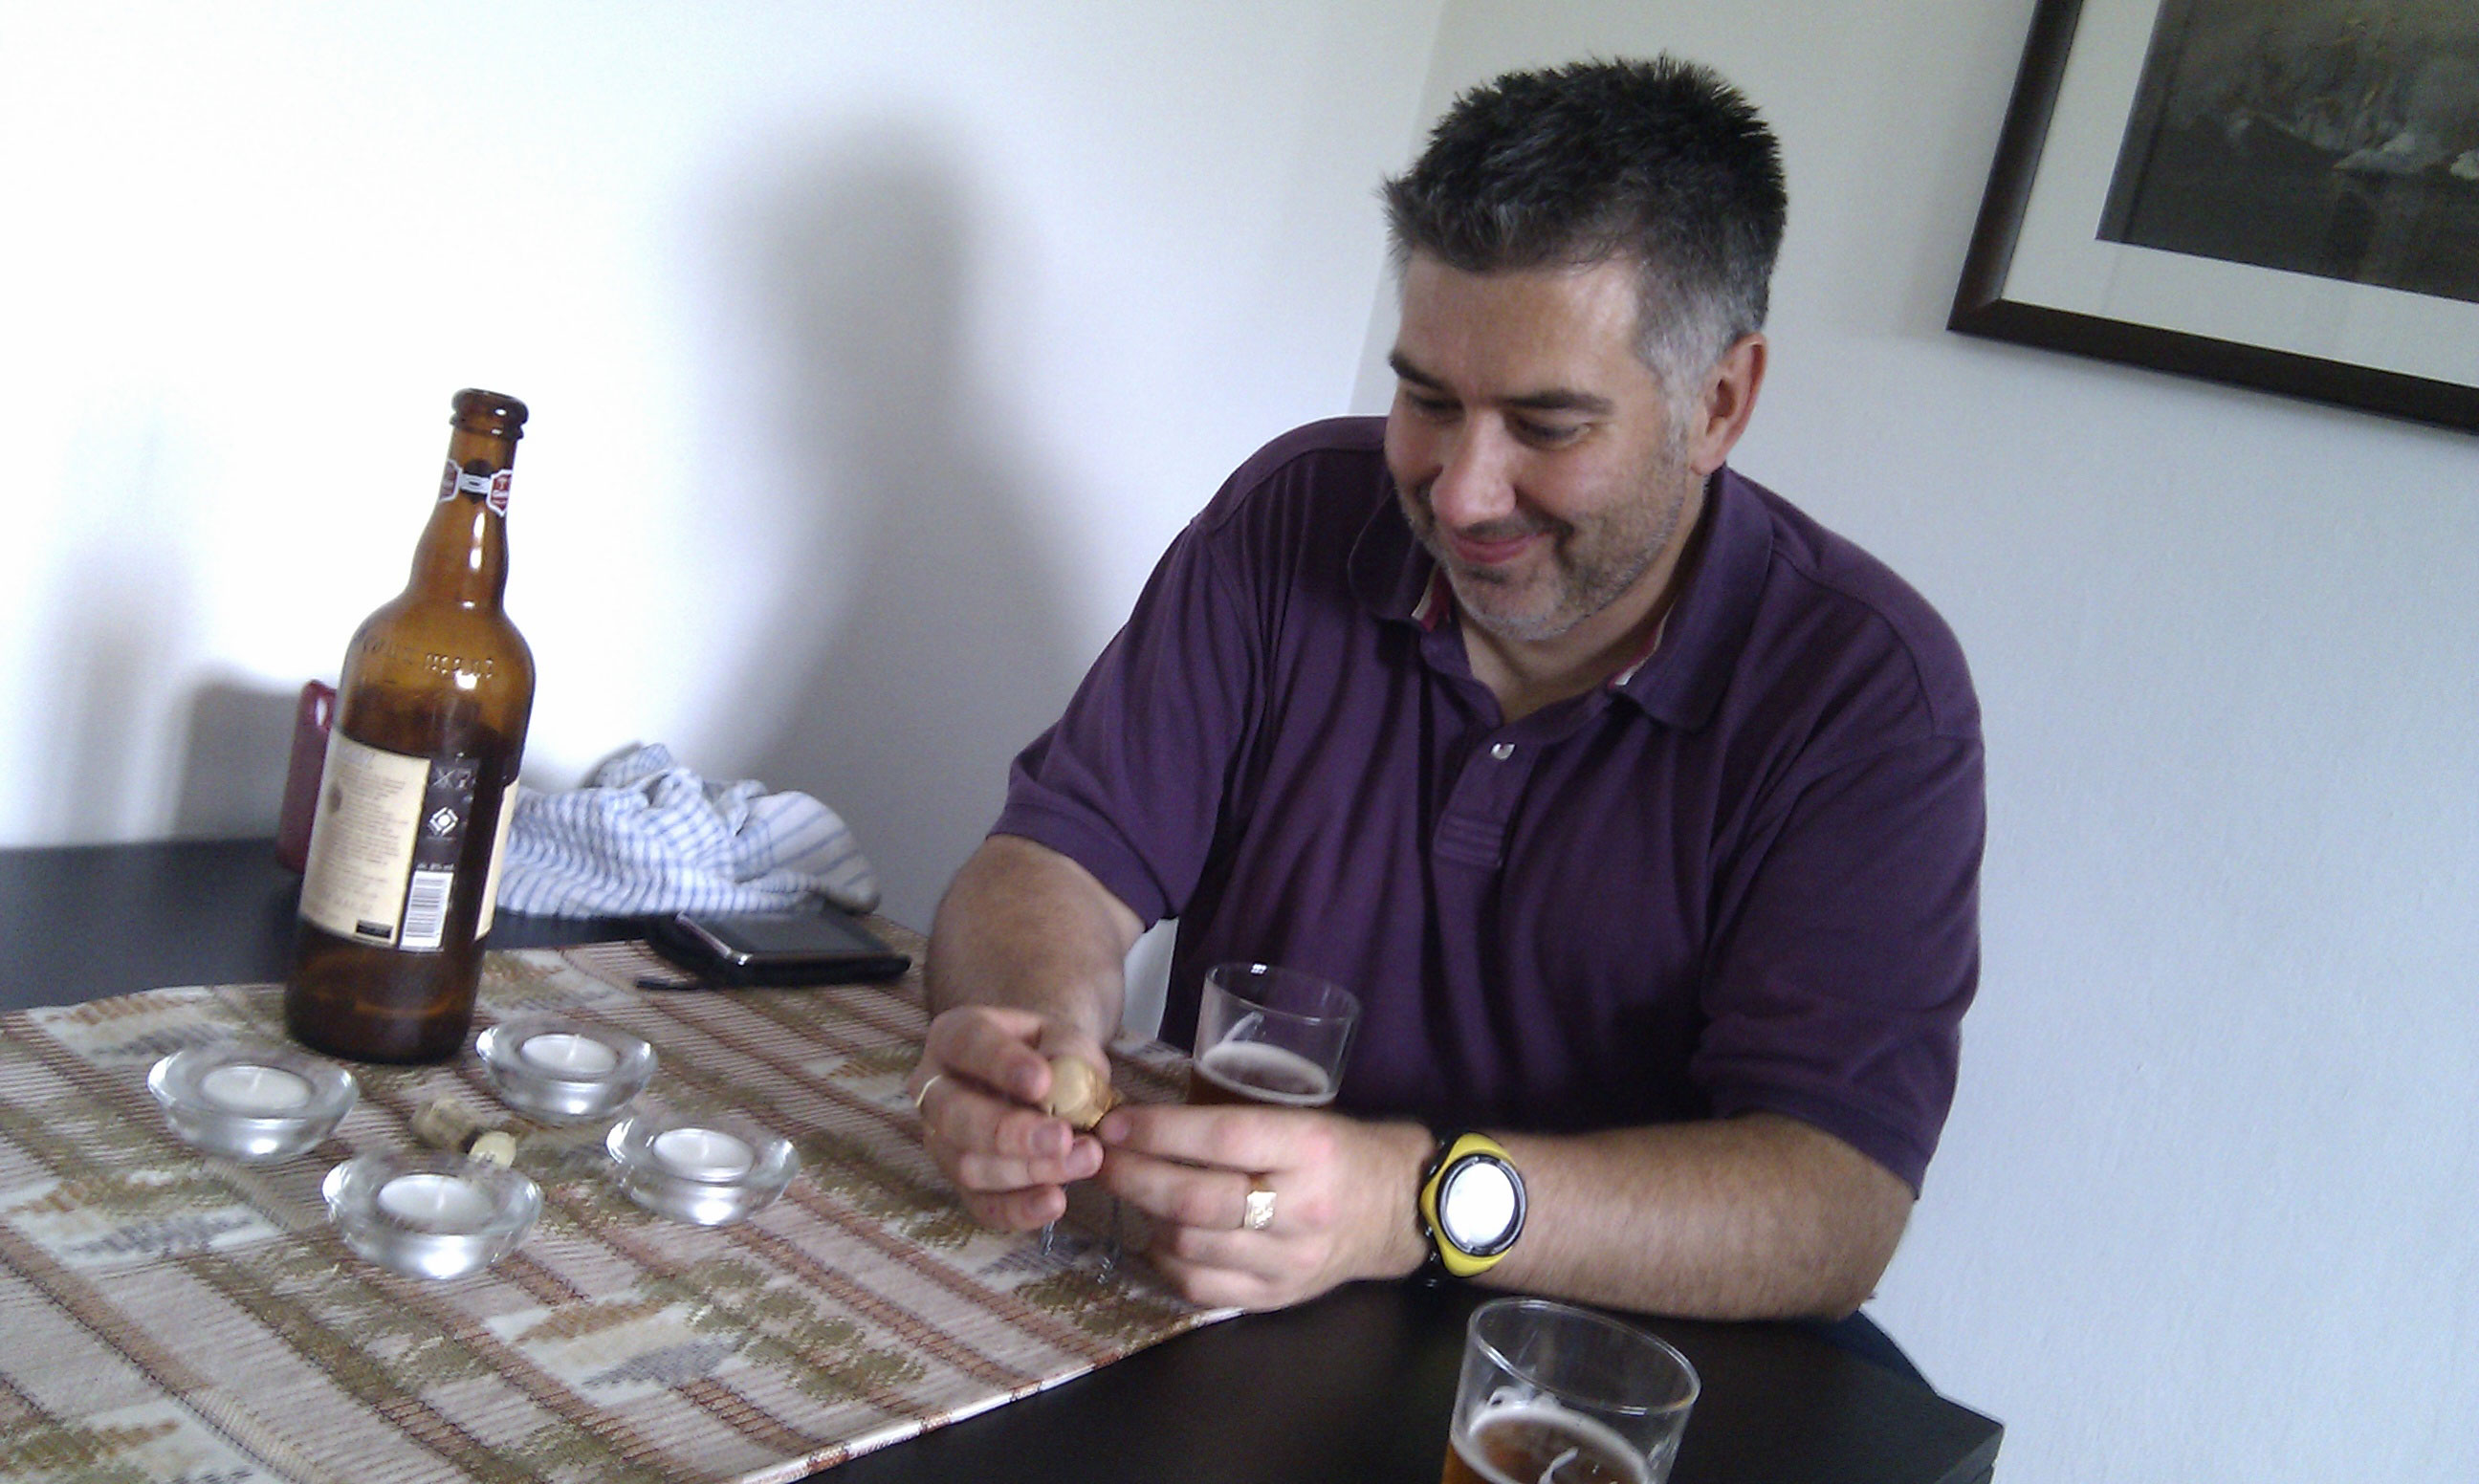 Mike inspecting a Chimay cork